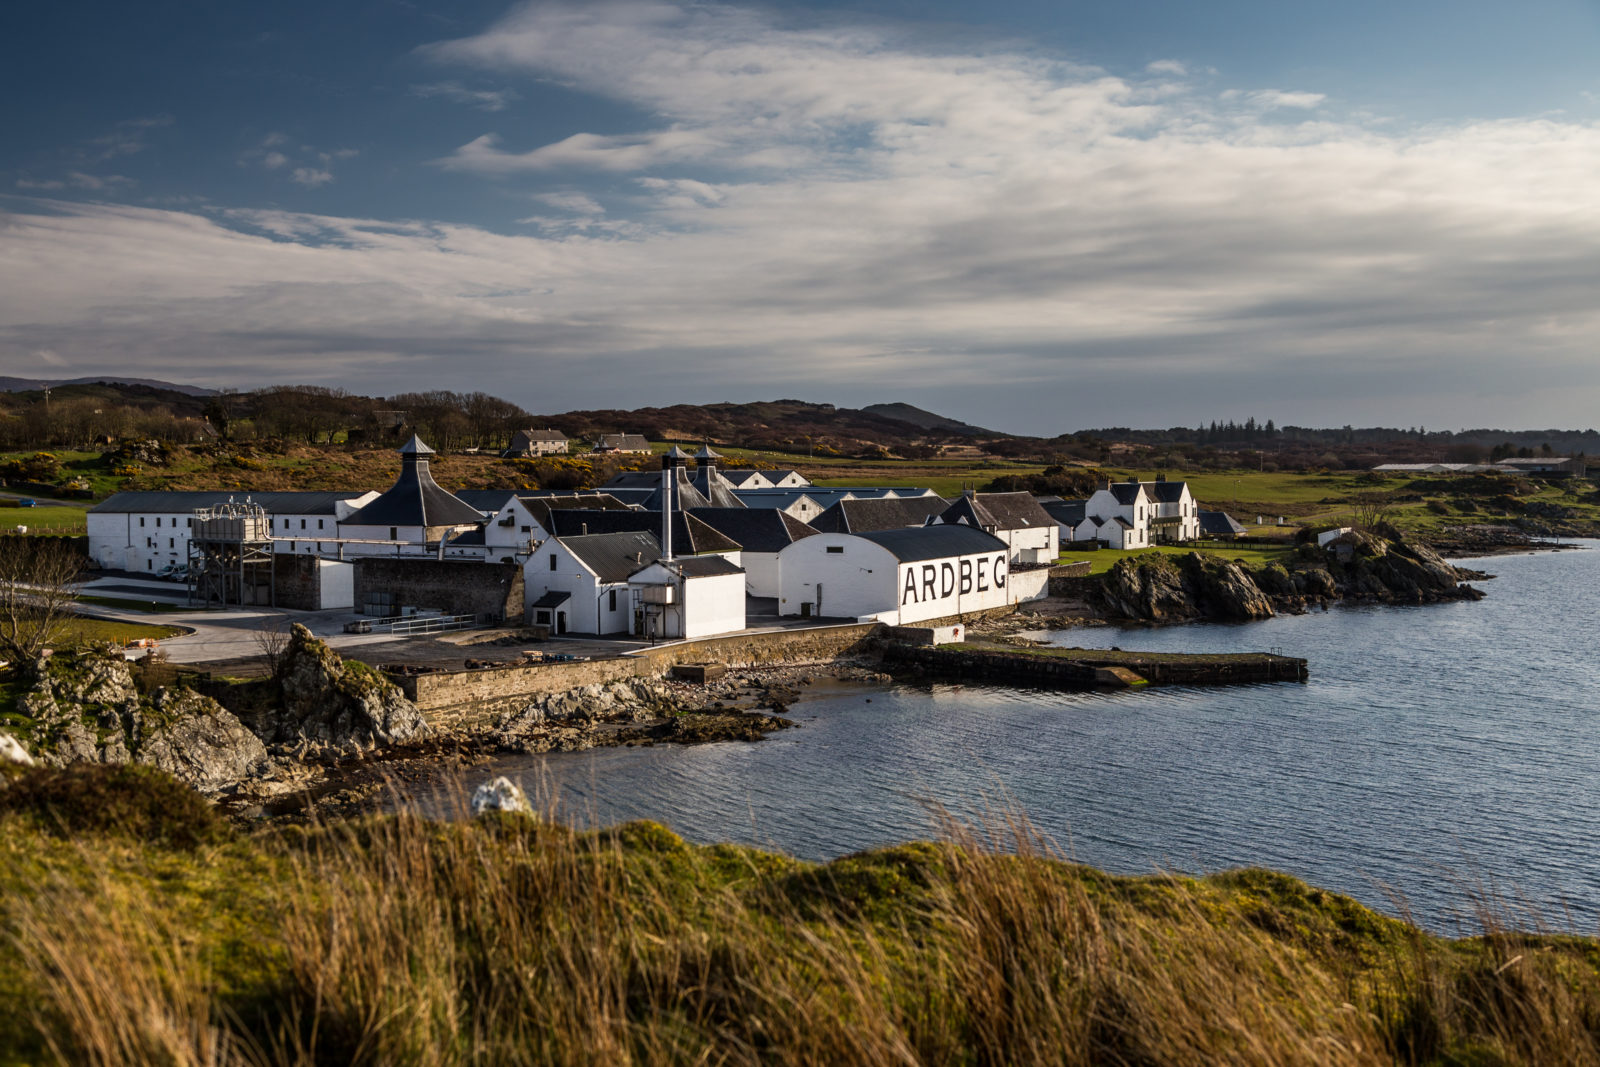 Photo of Ardbeg Distillery in Scotland